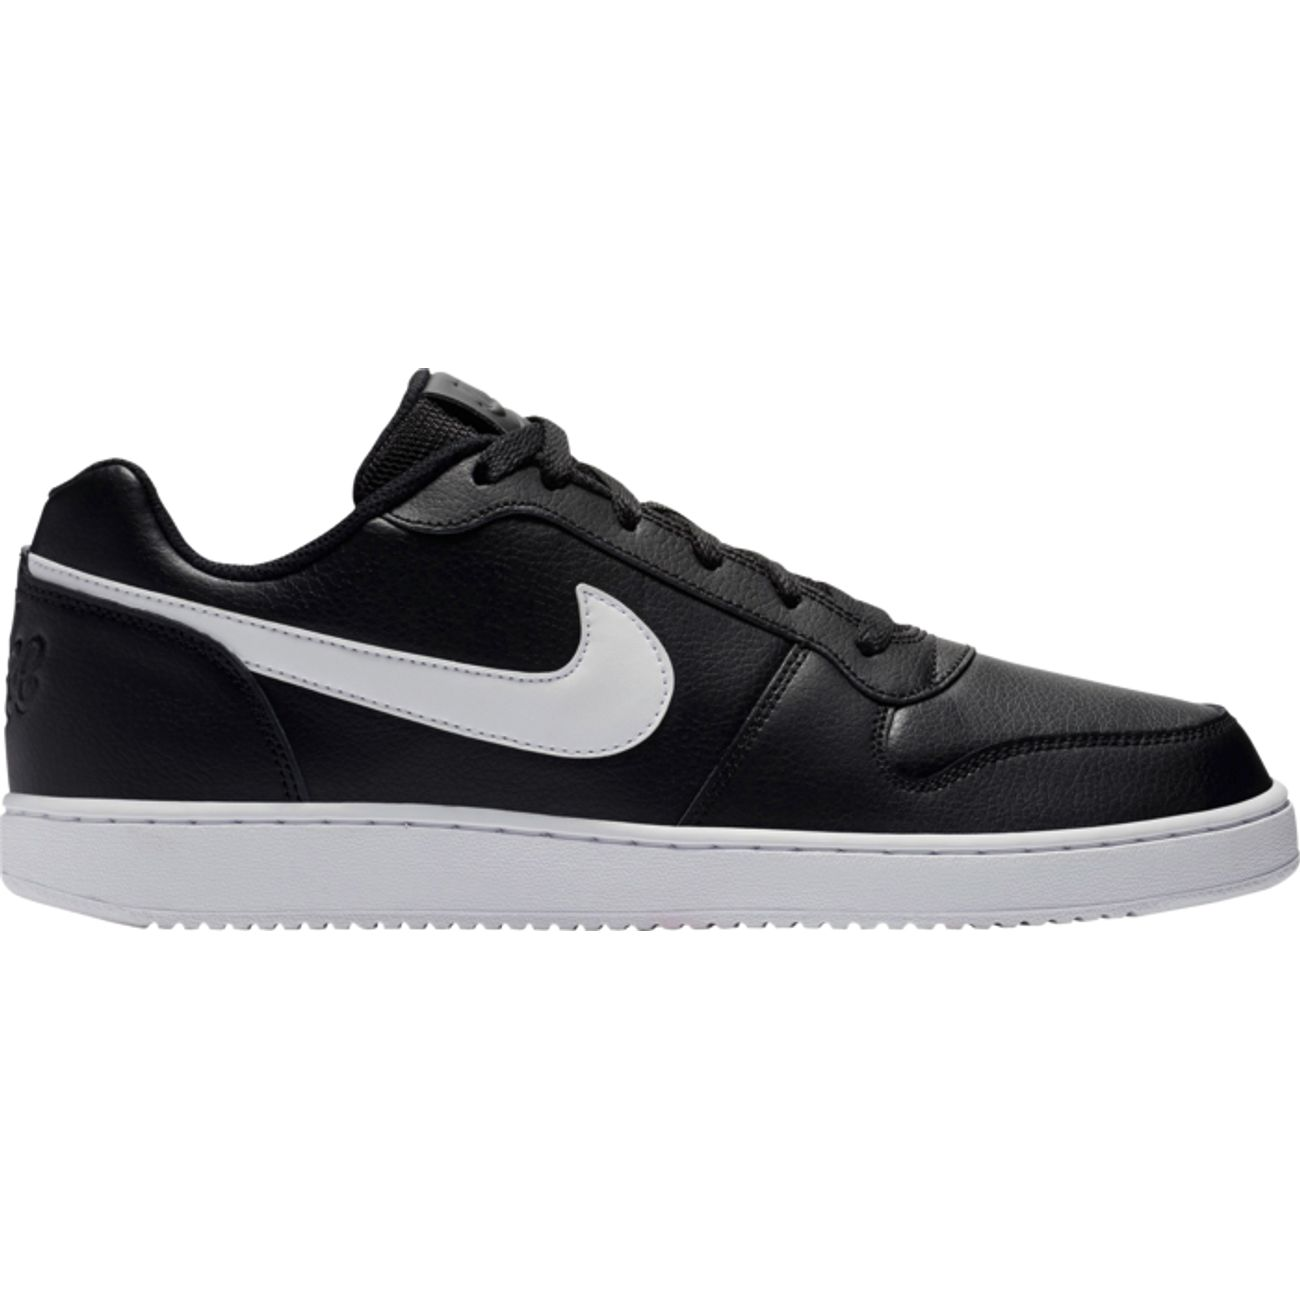 wholesale dealer 8be87 ec07d CHAUSSURES BASSES Basketball homme NIKE EBERNON LOW